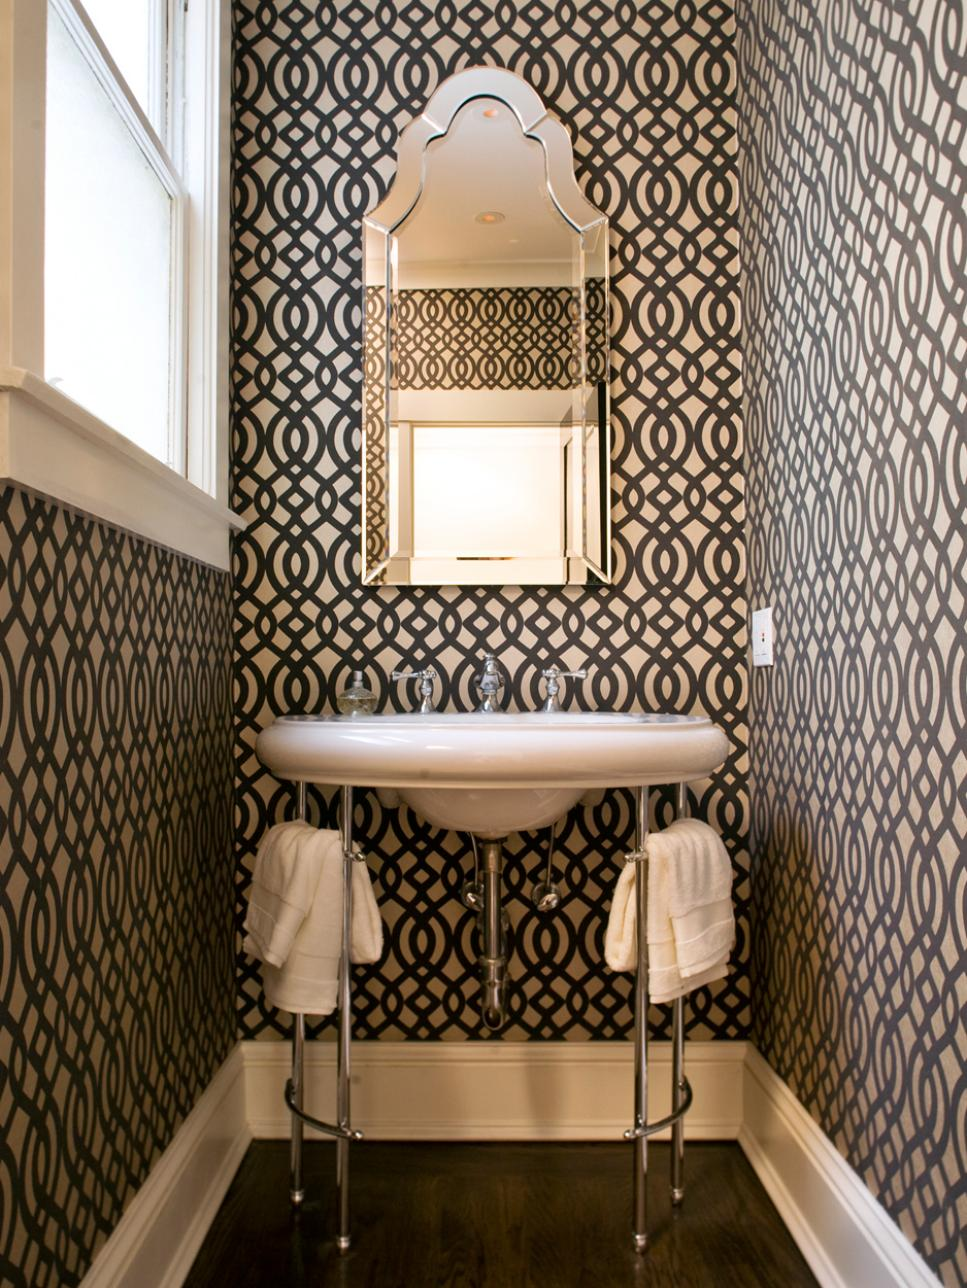 Narrow Bathroom Space With Wallpaper